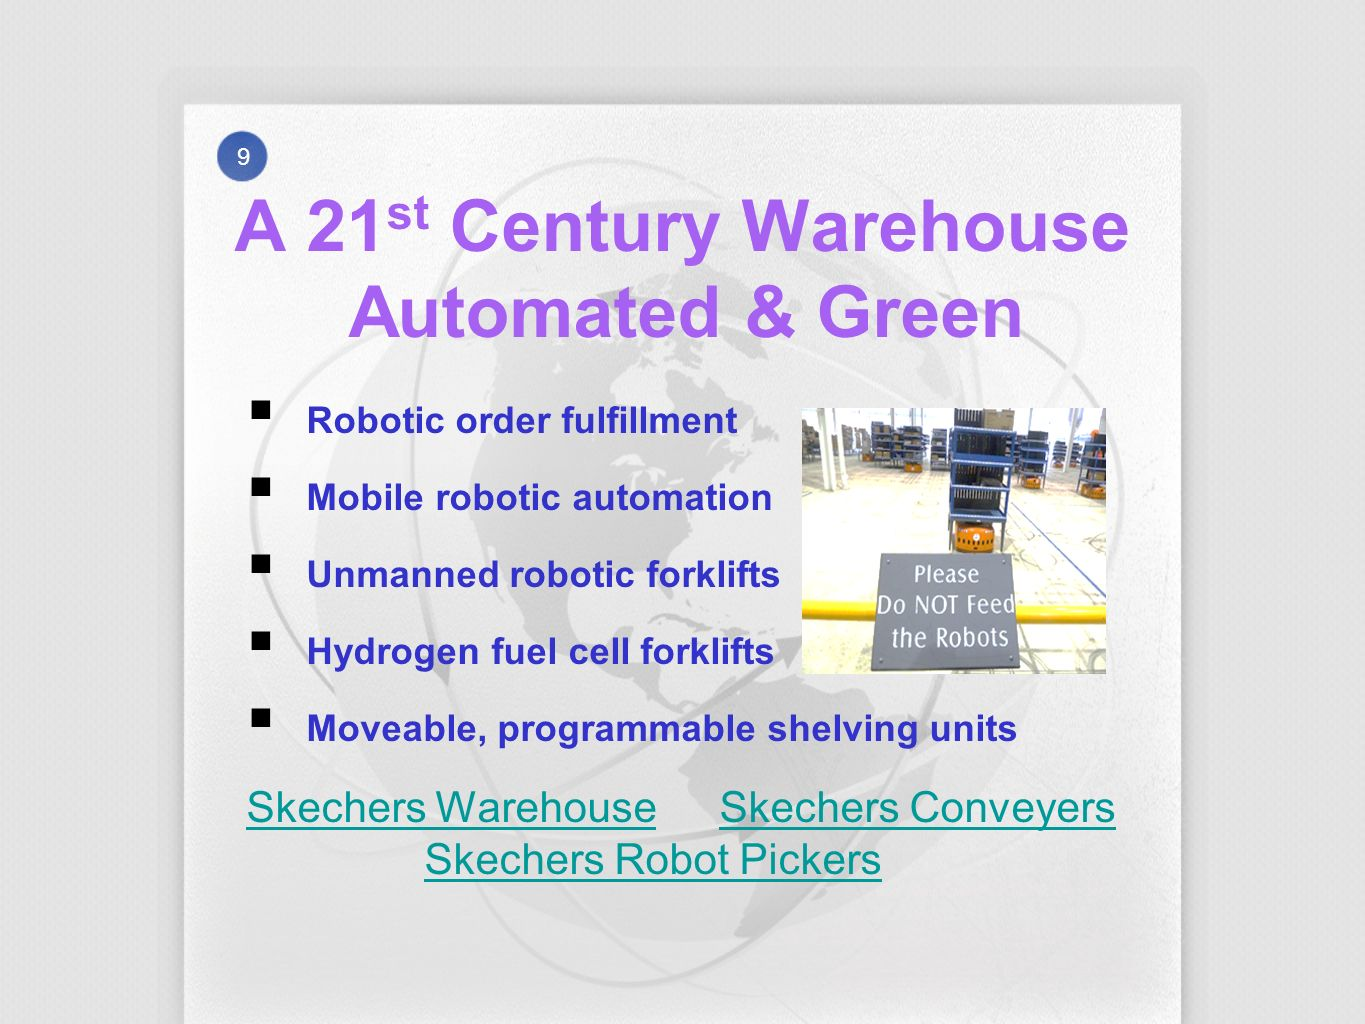 A 21 st Century Warehouse Automated & Green 9 Robotic order fulfillment Mobile robotic automation Unmanned robotic forklifts Hydrogen fuel cell forklifts Moveable, programmable shelving units Skechers WarehouseSkechers Warehouse Skechers Conveyers Skechers Robot PickersSkechers ConveyersSkechers Robot Pickers